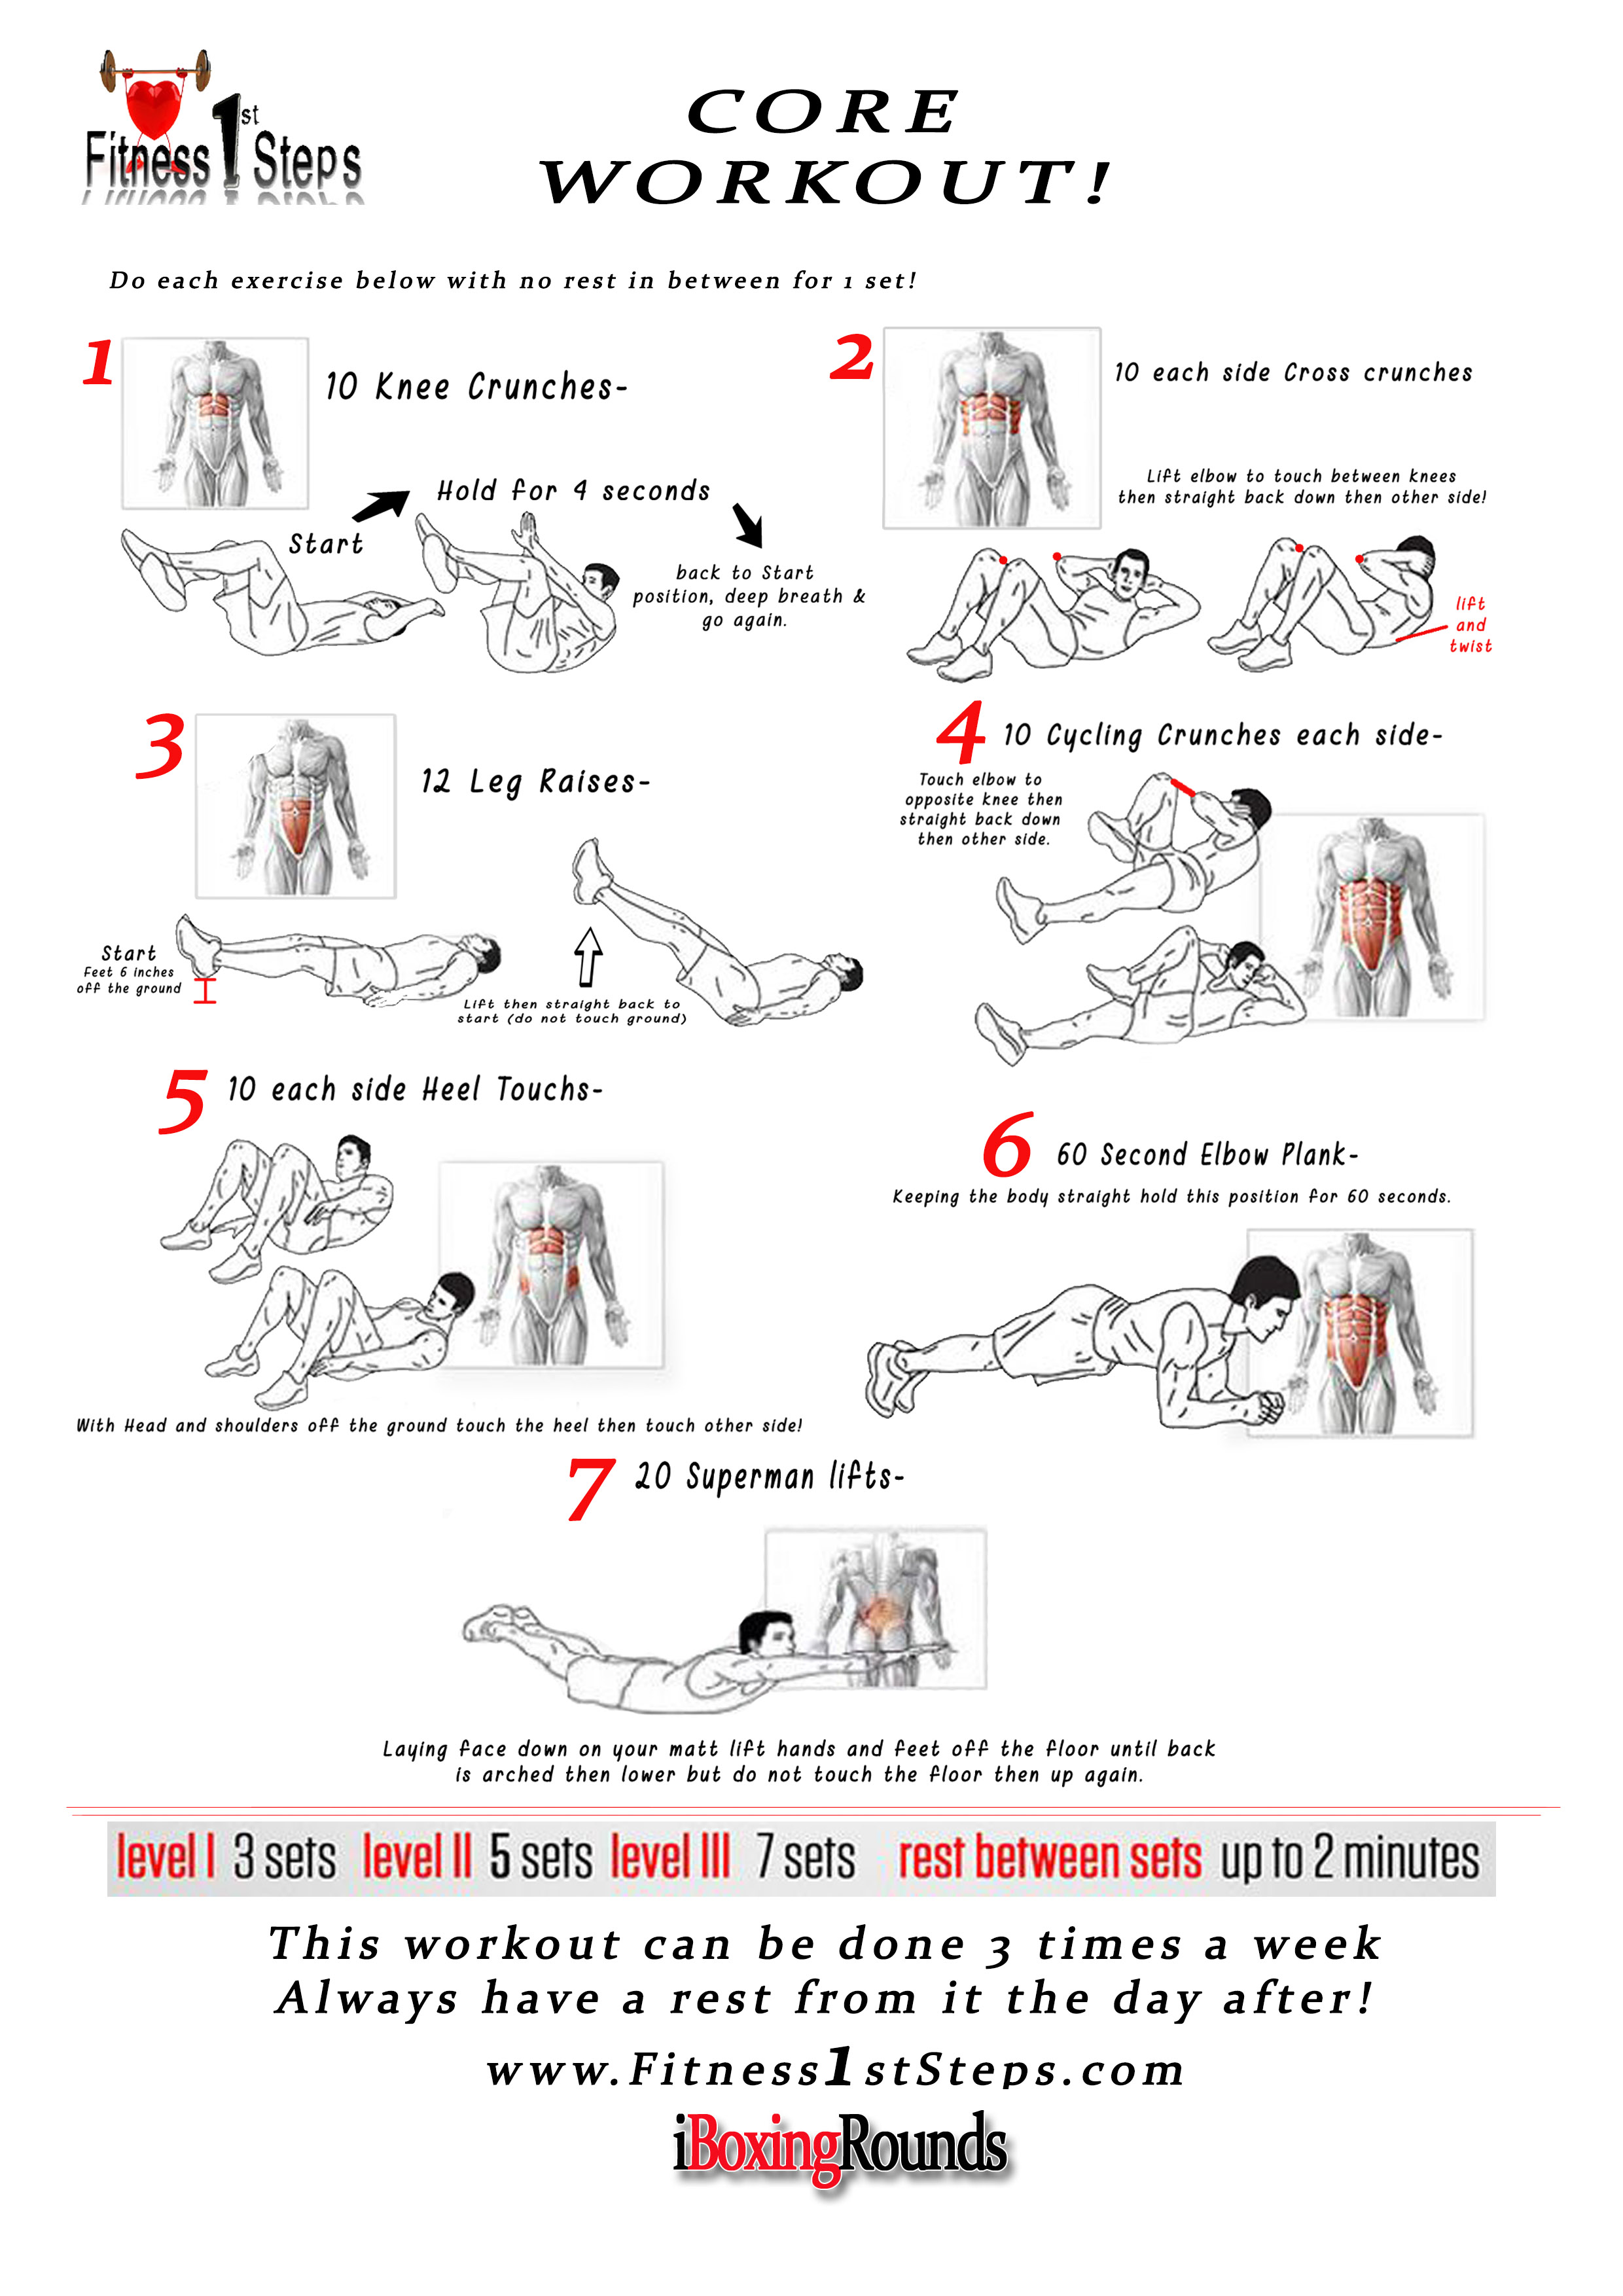 Core Can Be Done Every Other Day Some Say But With This Routine I Would Rather You Do It 3 Times A Week Max